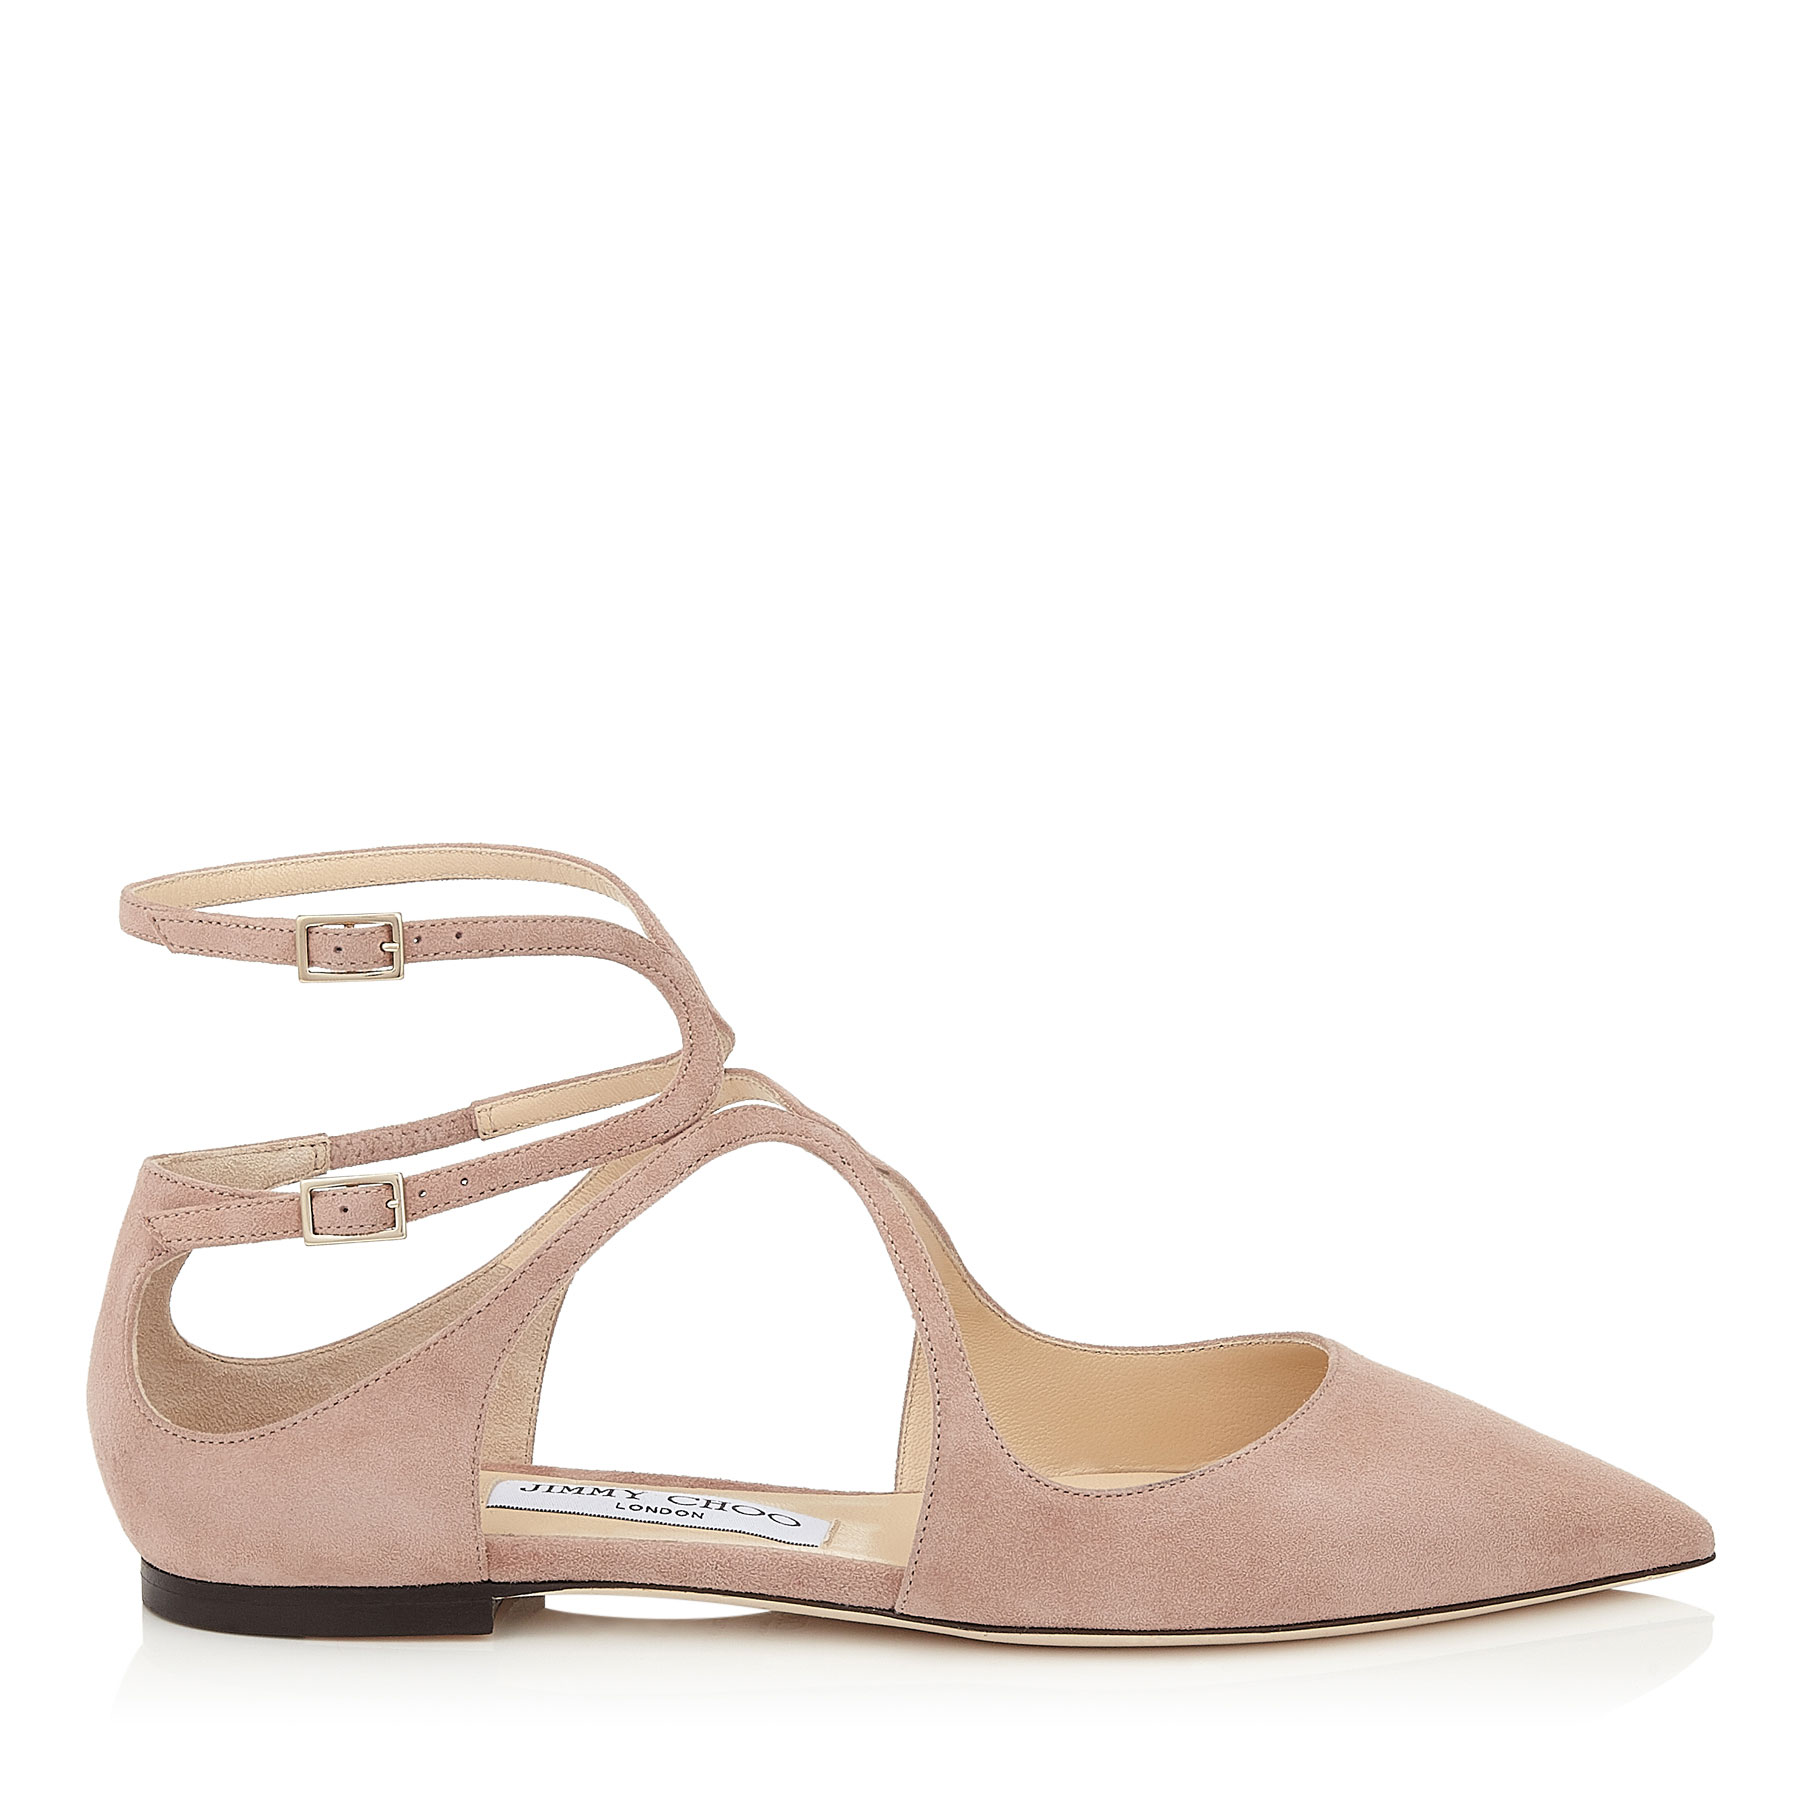 d4587c9c09a7 LANCER FLAT Ballet Pink Suede Pointy Toe Flats by Jimmy Choo ...